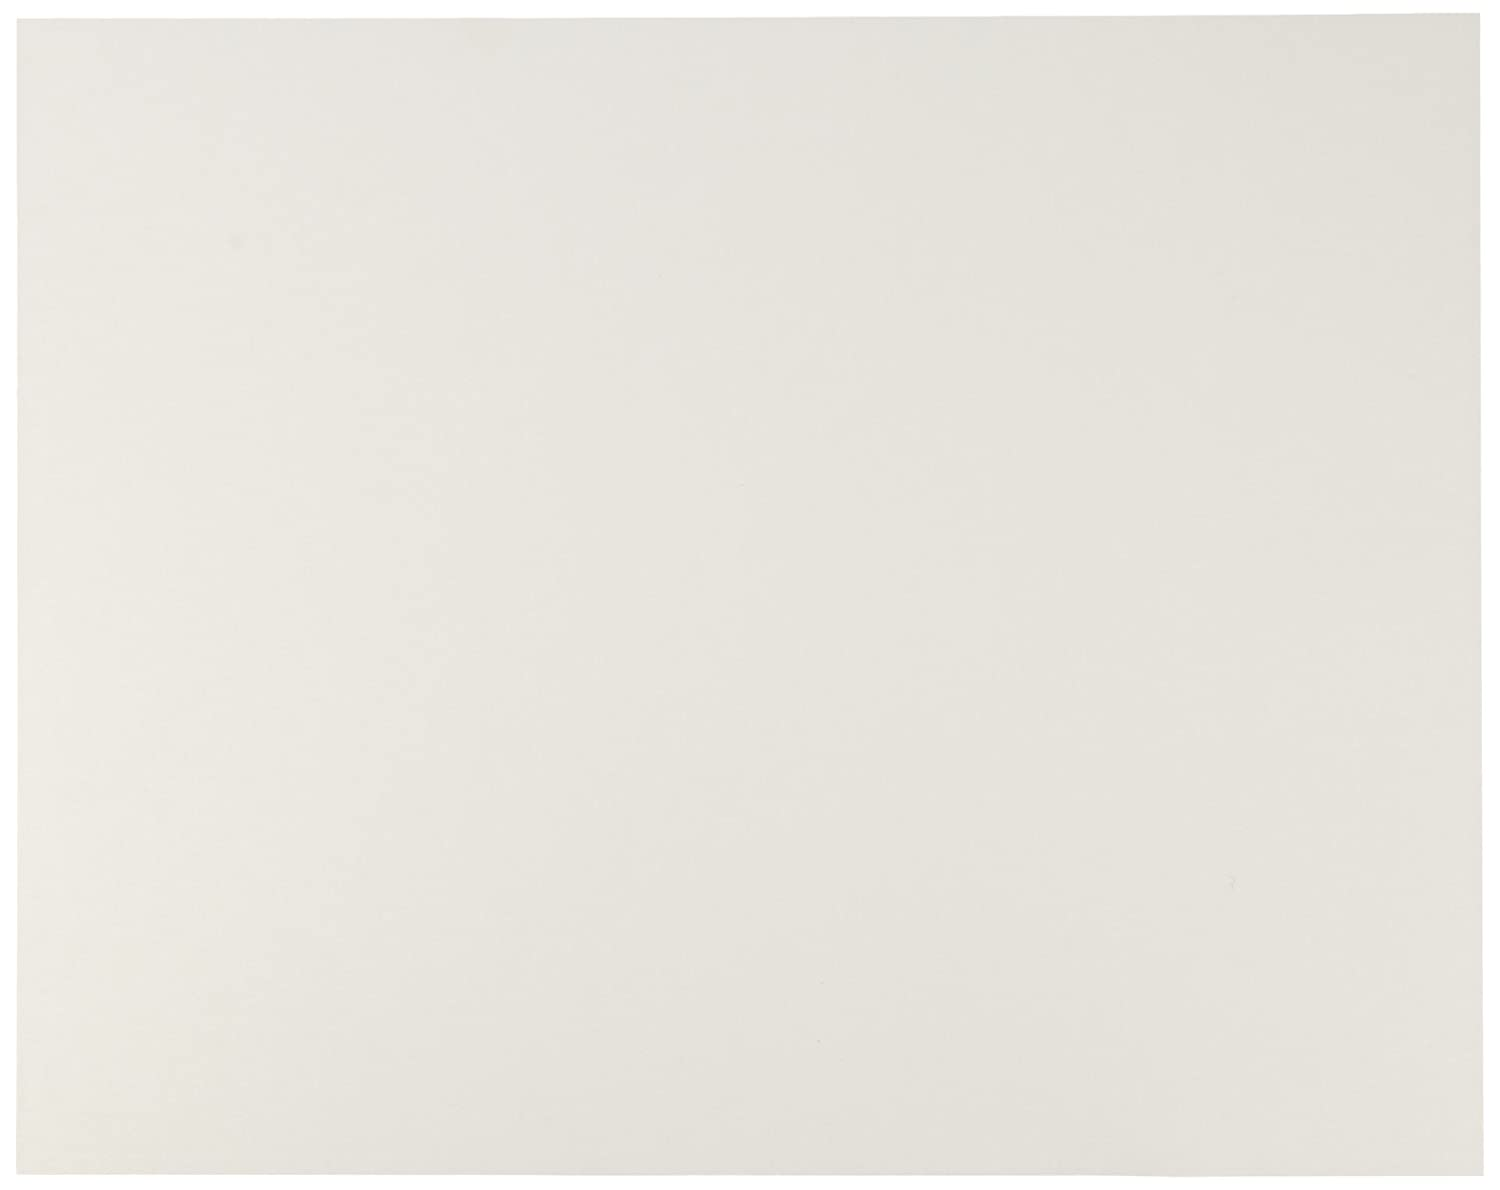 Sax 19 x 24 in. Halifax Cold Press Watercolor Paper - White, Pack 100   B0042SSYV8